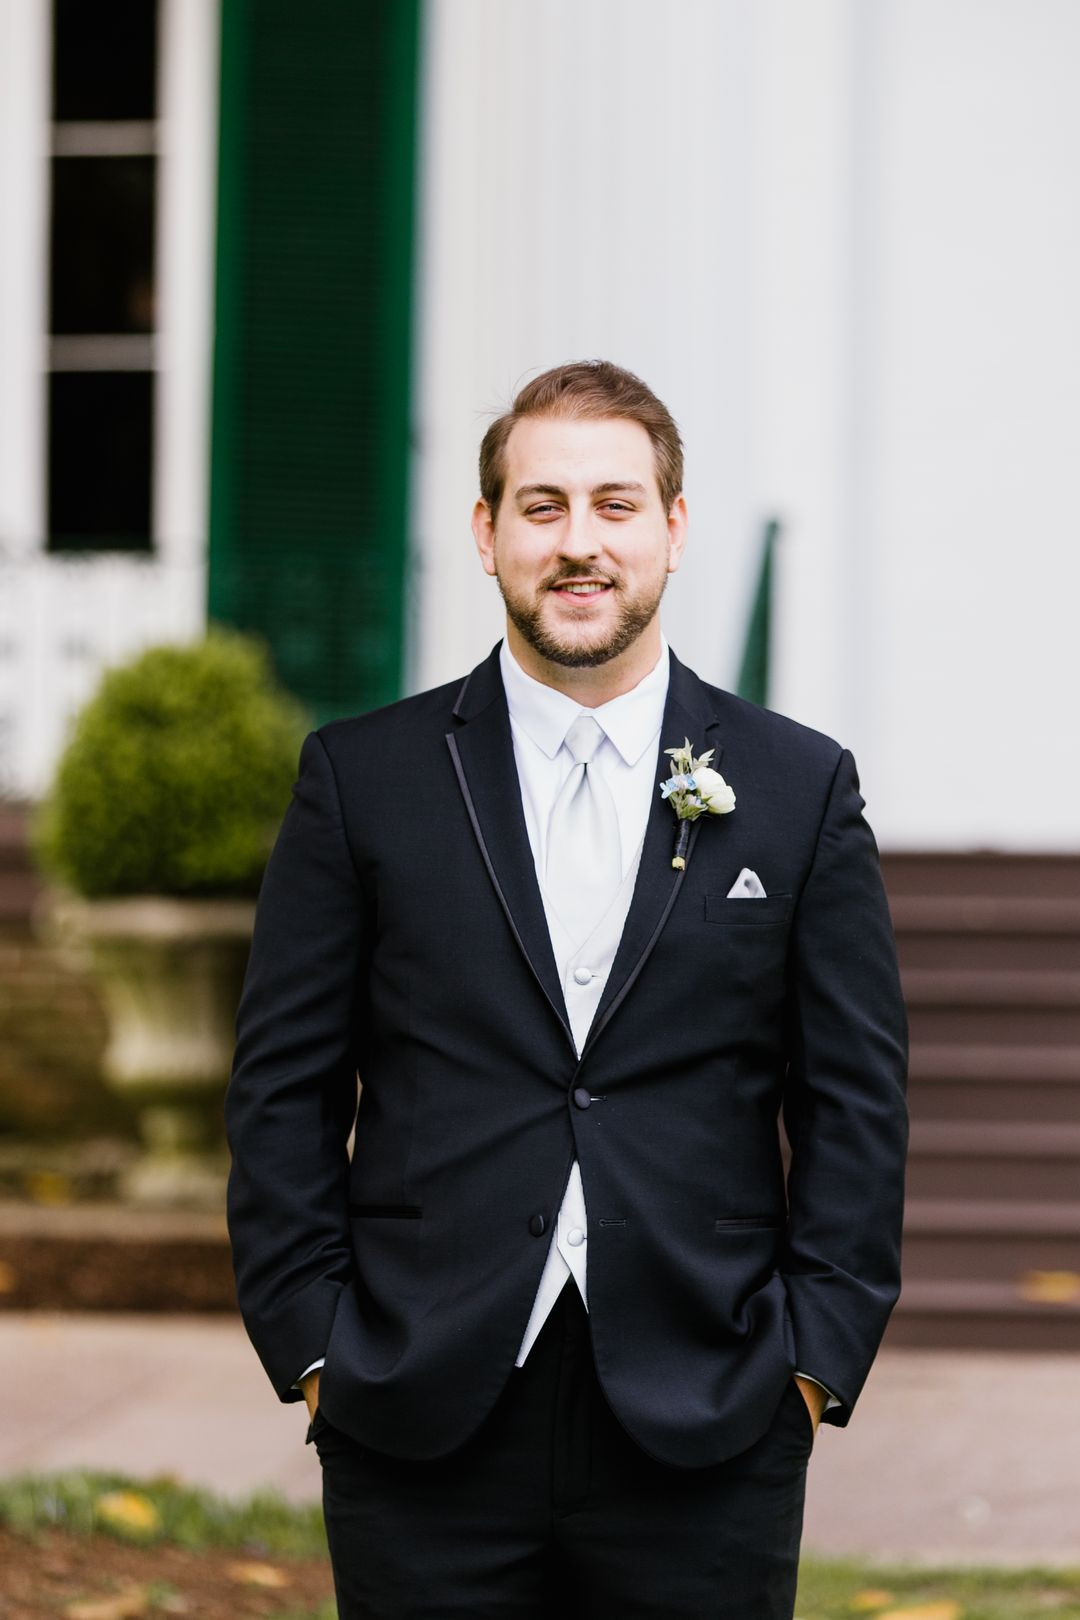 groom in black suit with white boutonierre